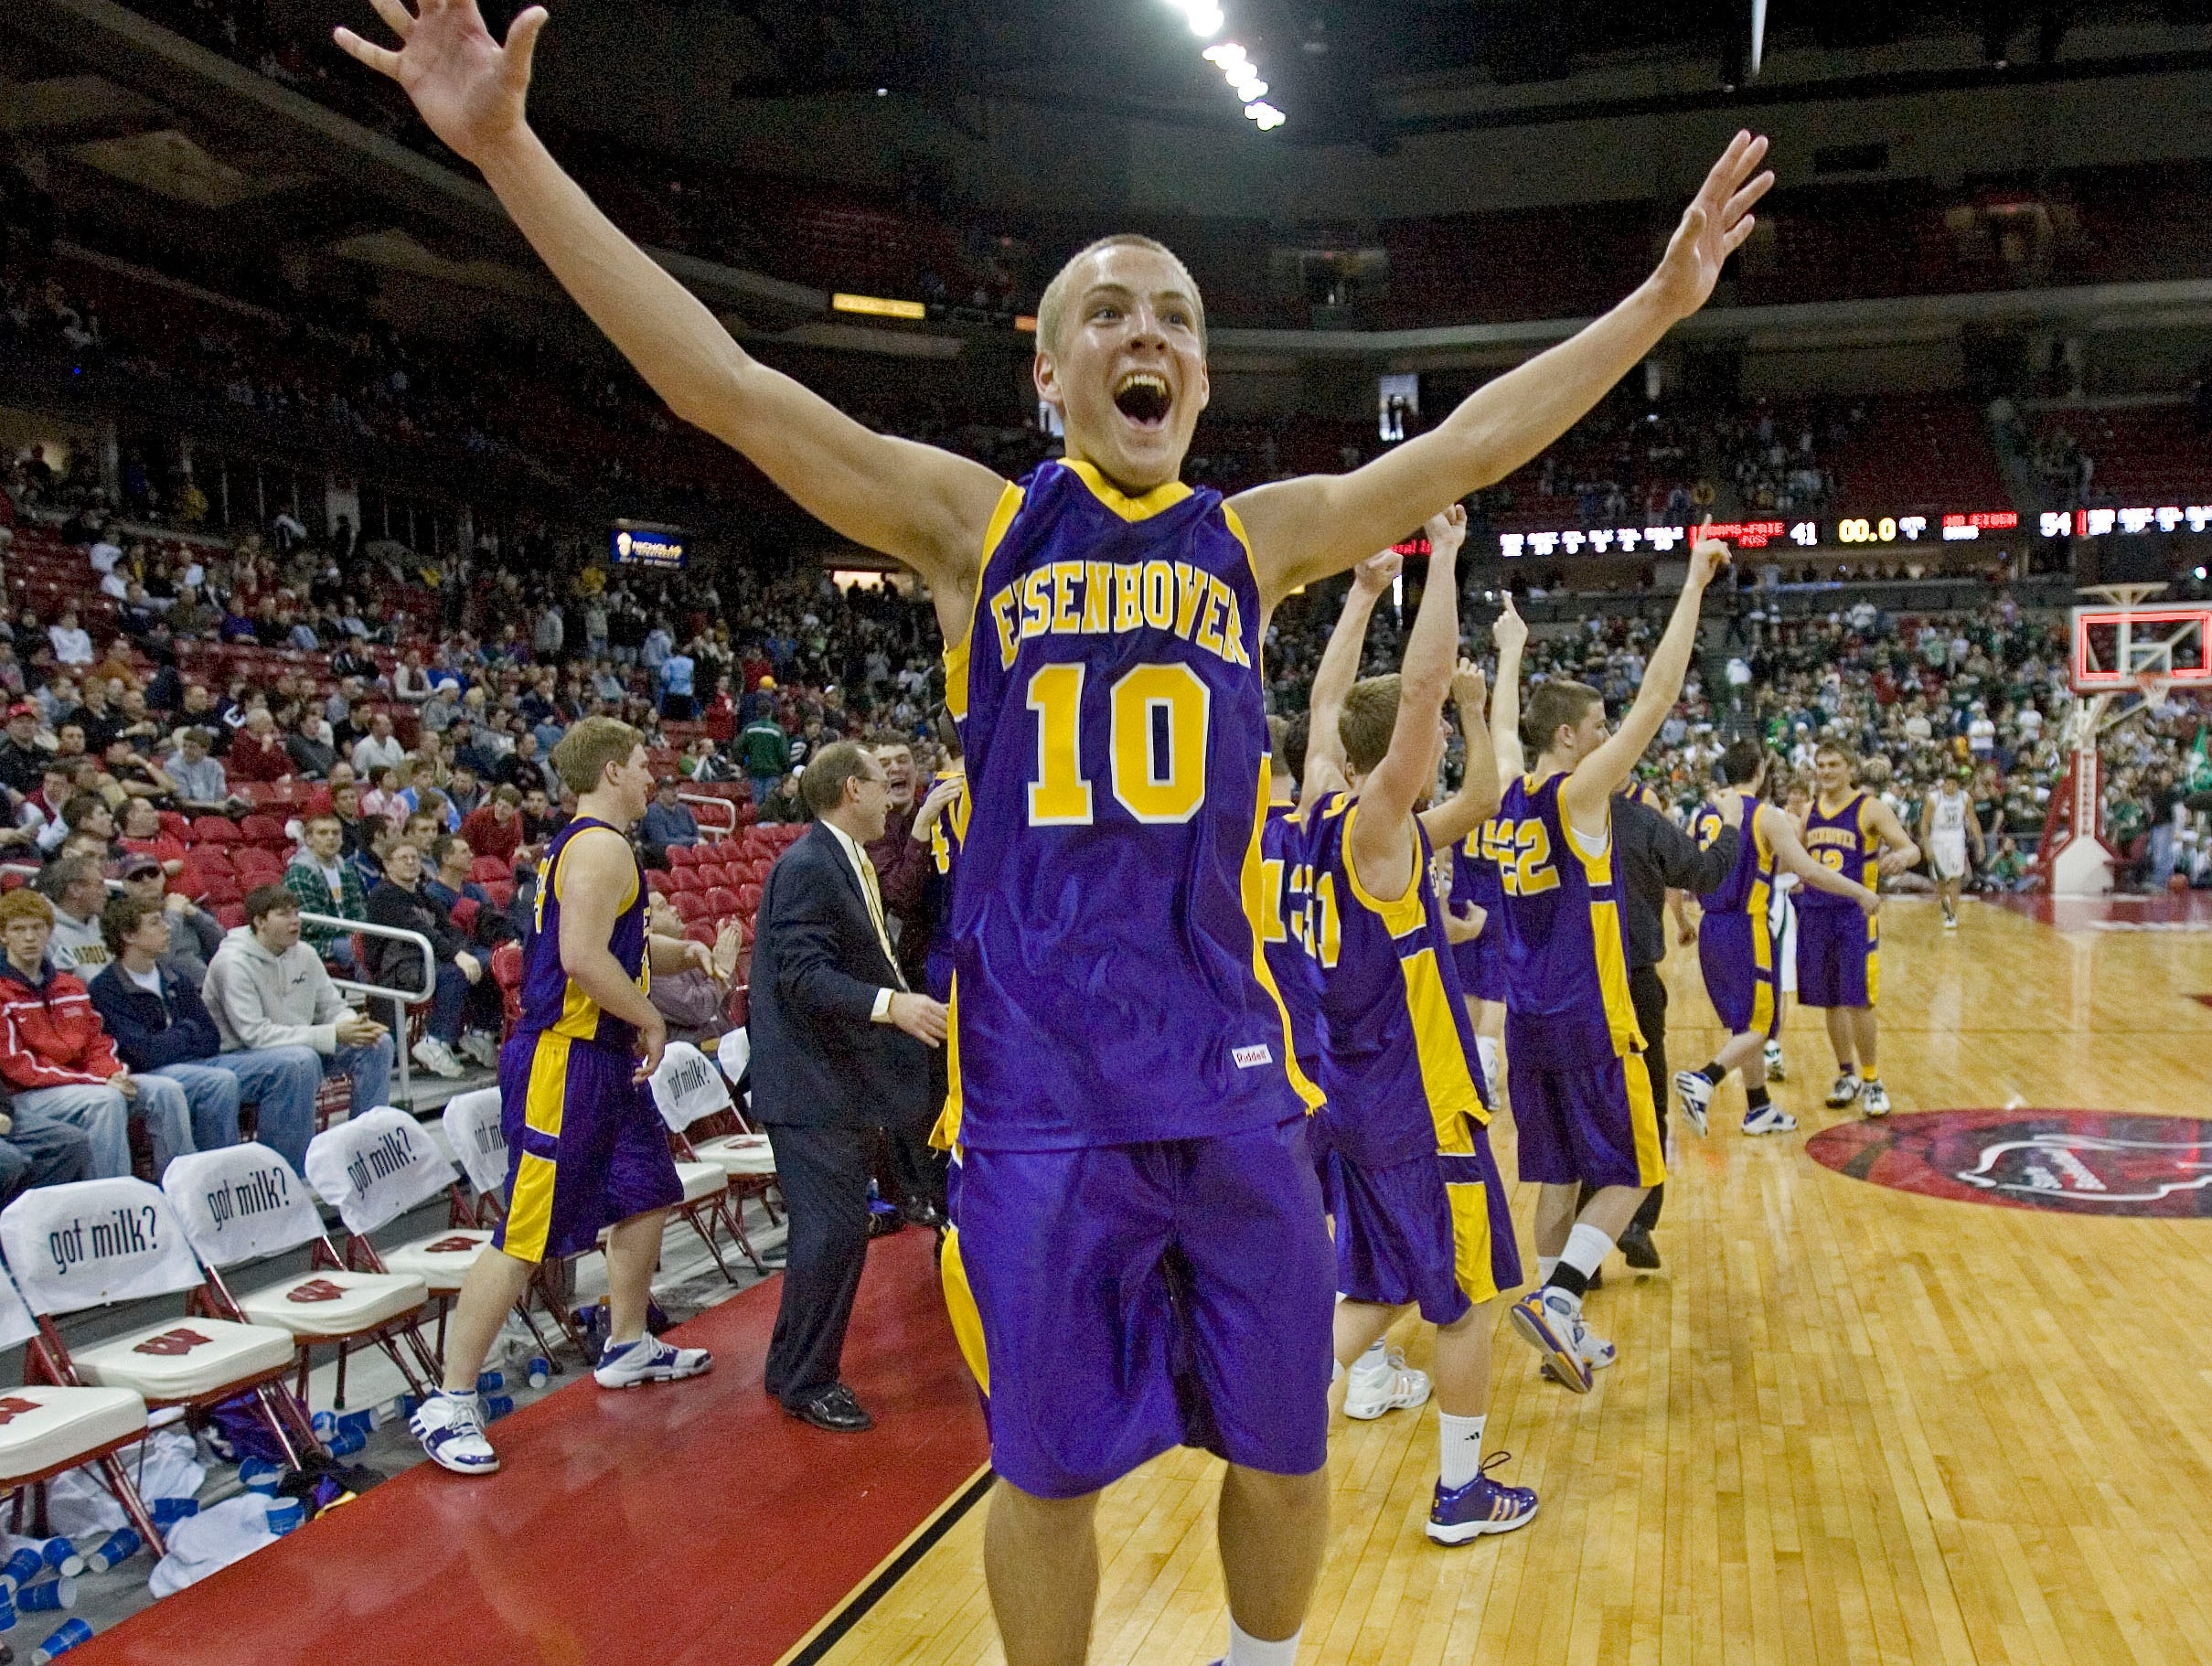 New Berlin Eisenhower's Alex Krzykowski and the rest of the team celebrates their victory over Adams-Friendship 54-41 to win the 2008 WIAA Division 2 championship at the Kohl Center in Madison, WI.